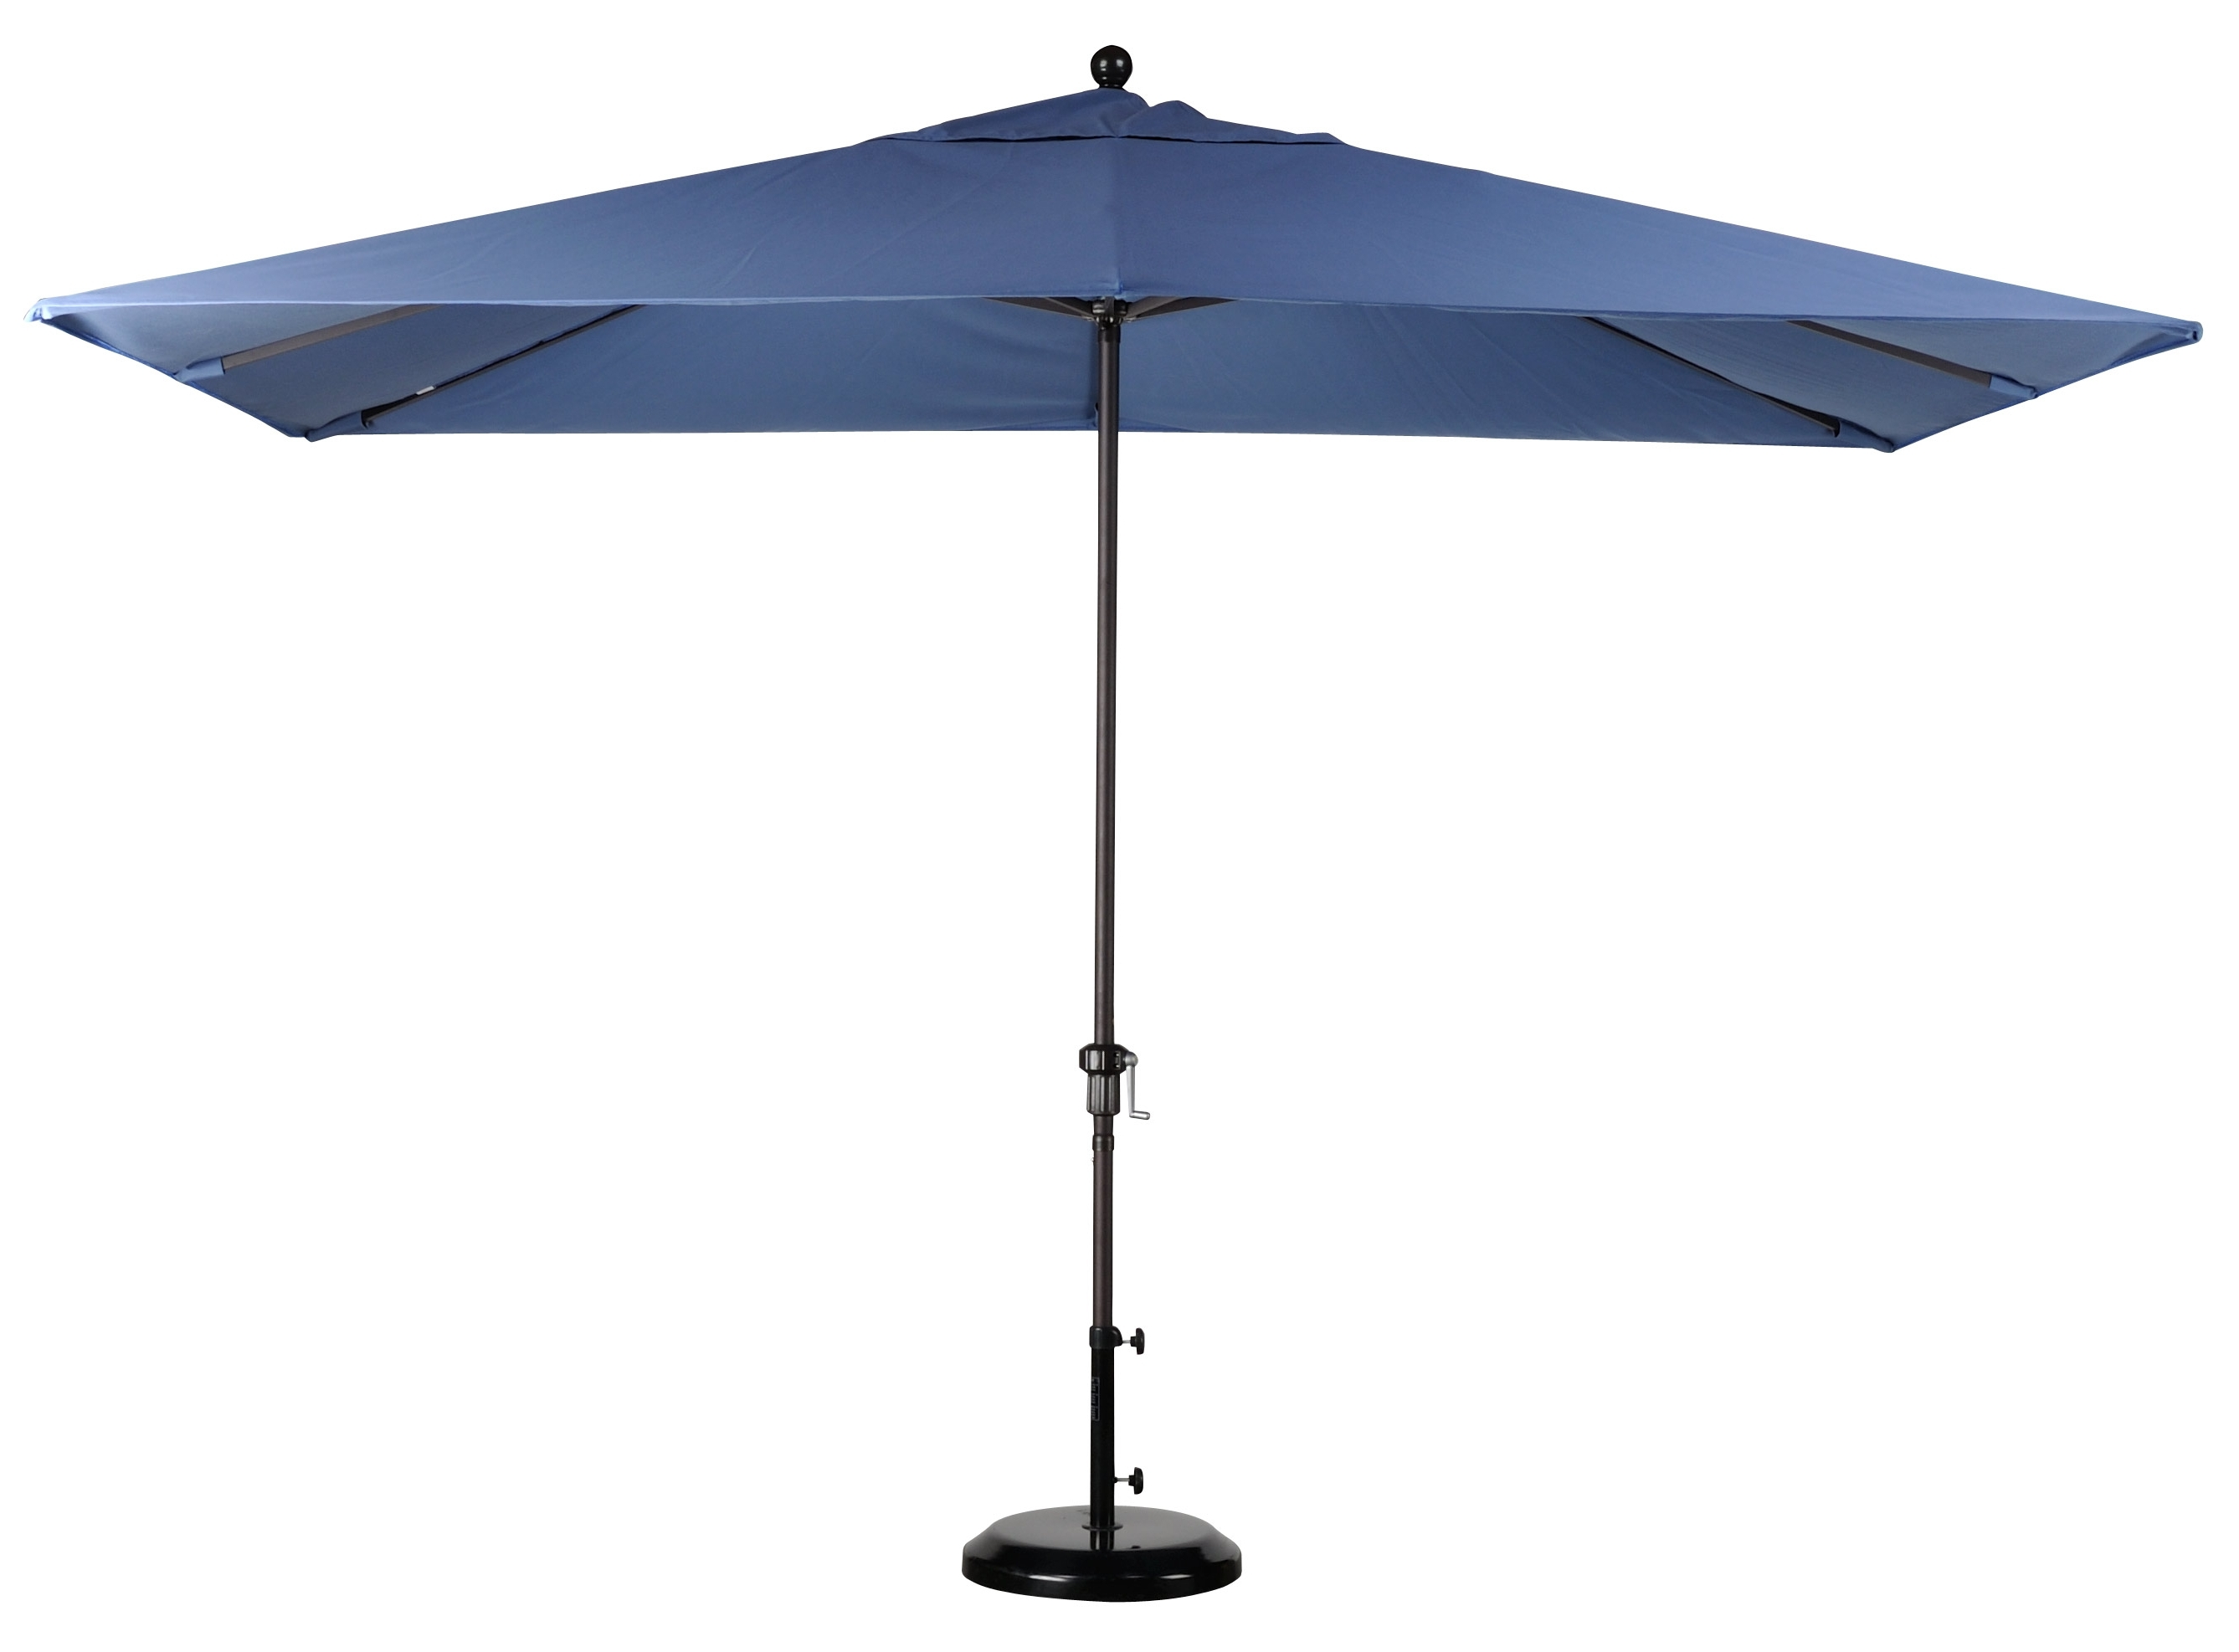 Square Sunbrella Patio Umbrellas Pertaining To Most Recently Released Best Selection Rectangular Market Umbrellas – Featuring Sunbrella (View 13 of 20)